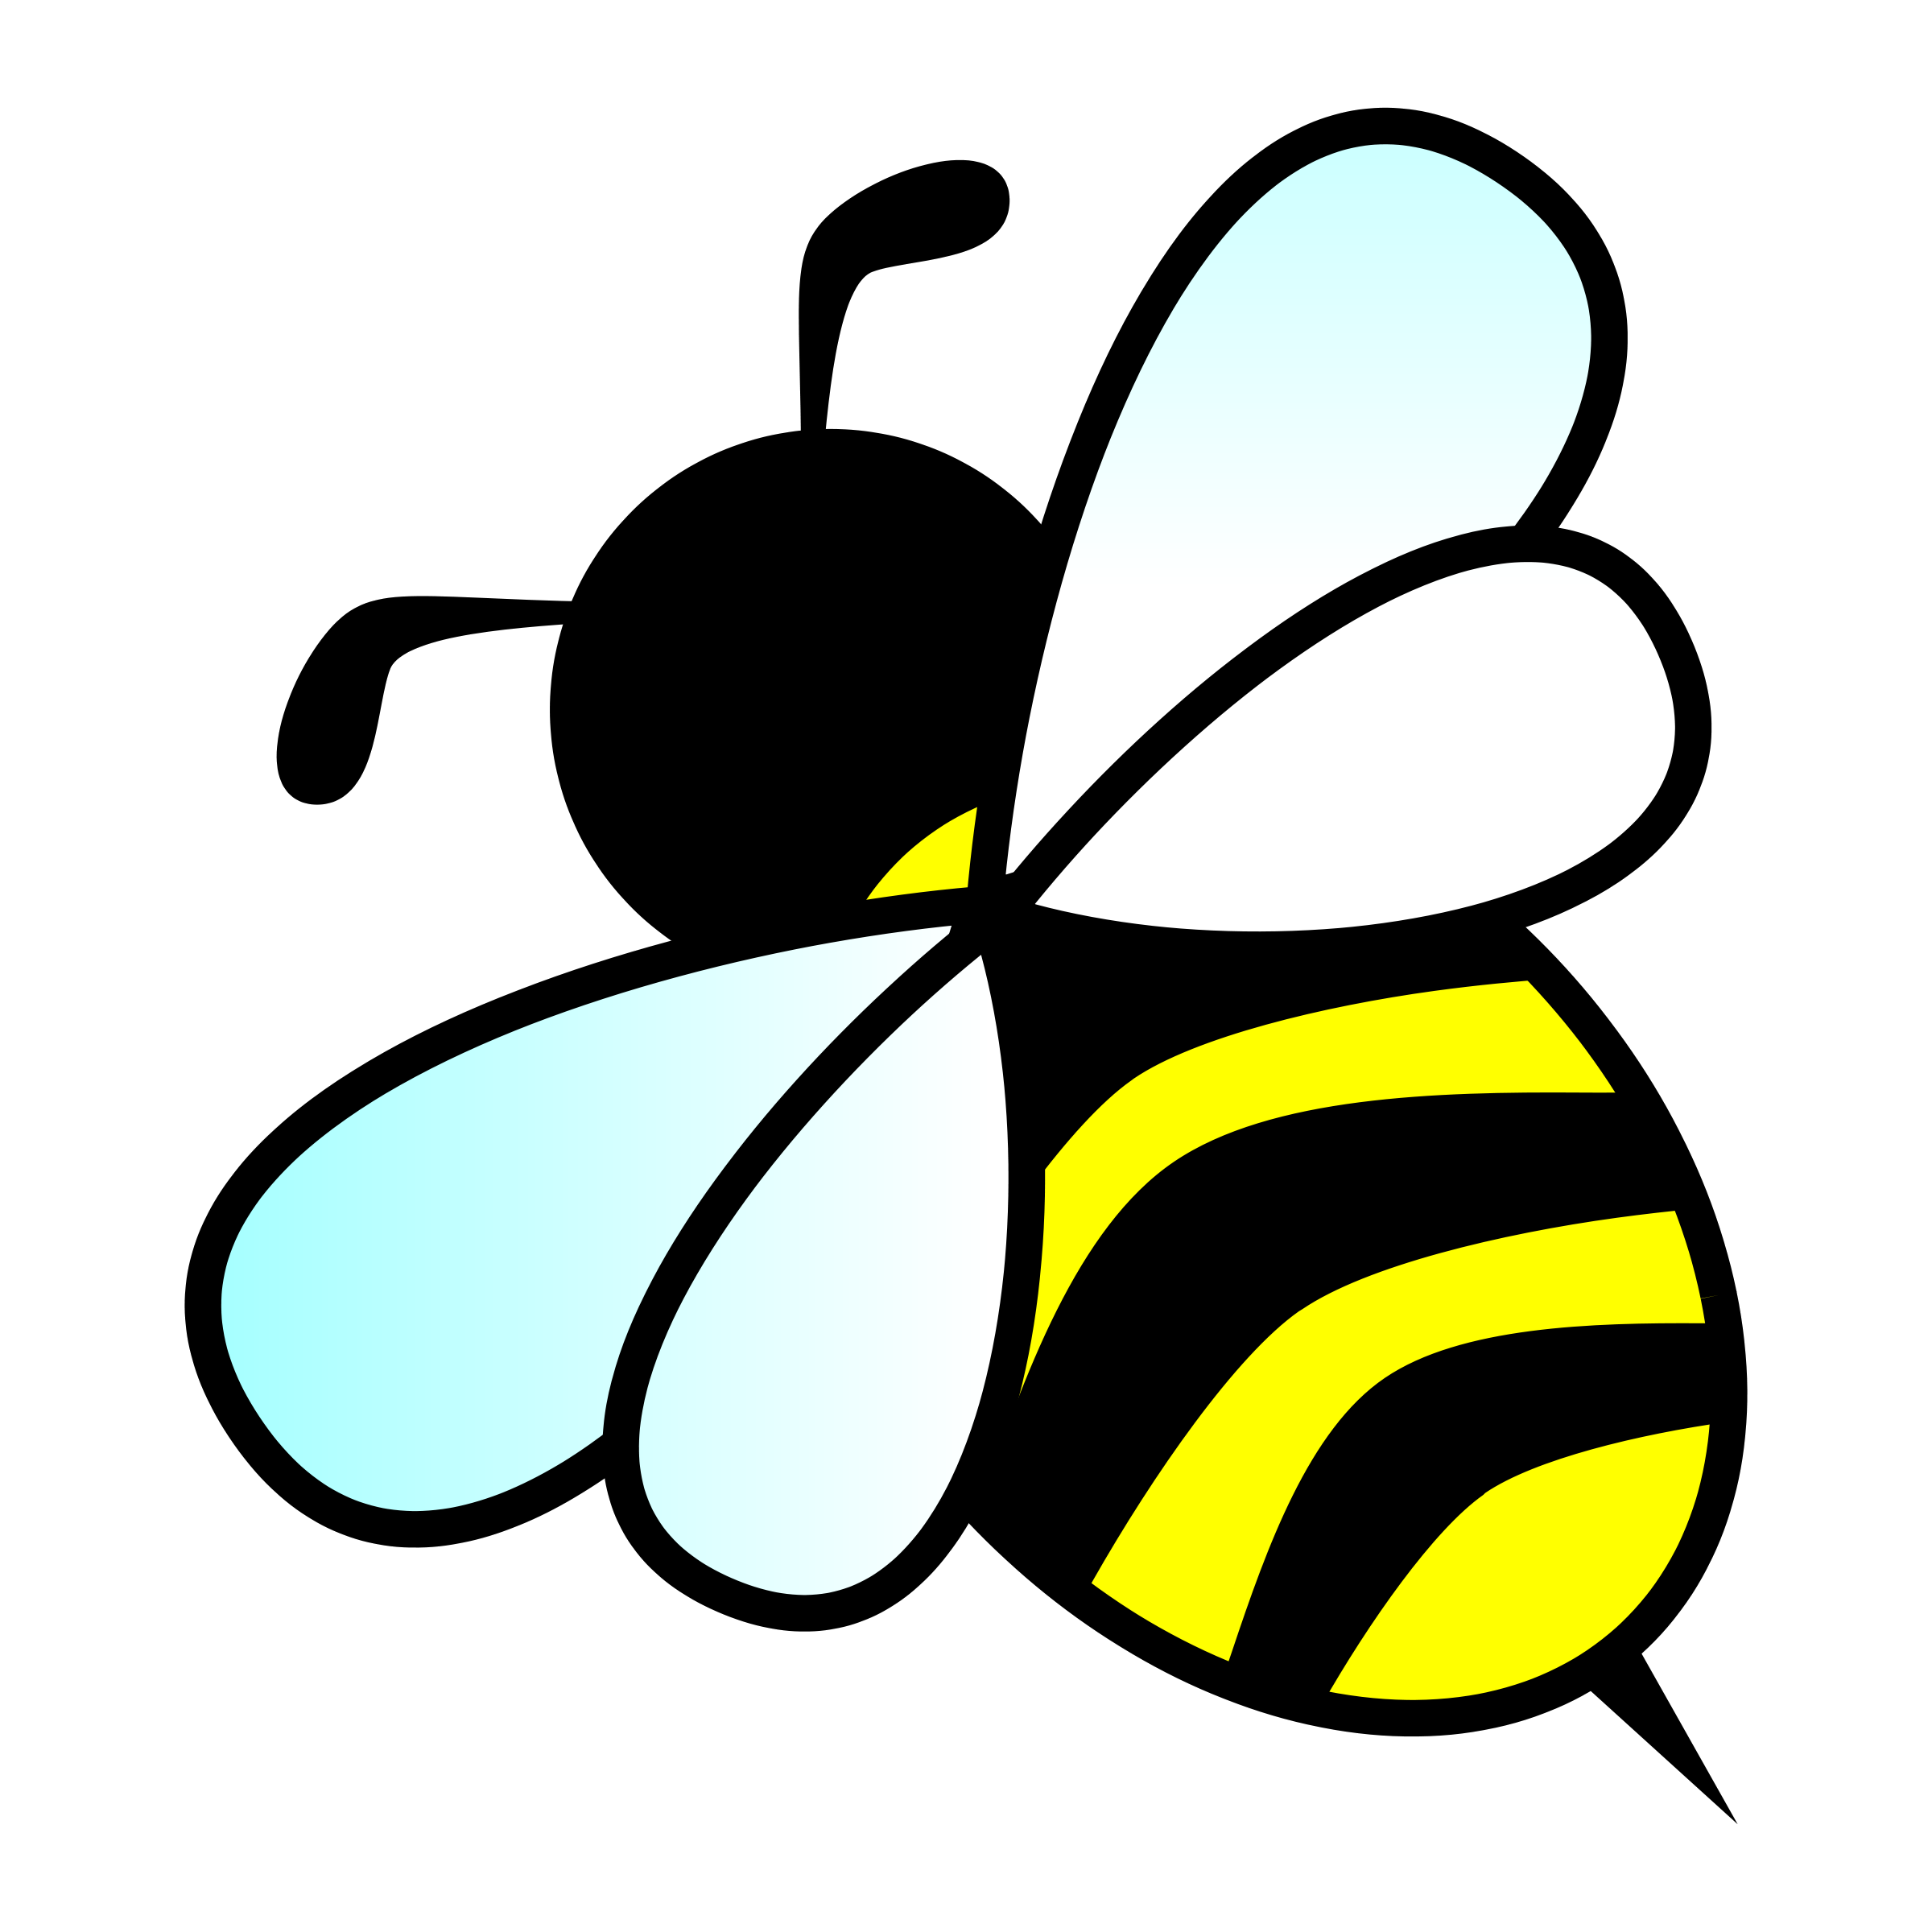 Bee Images For Clipart Shoppe Bees Transparent Png.